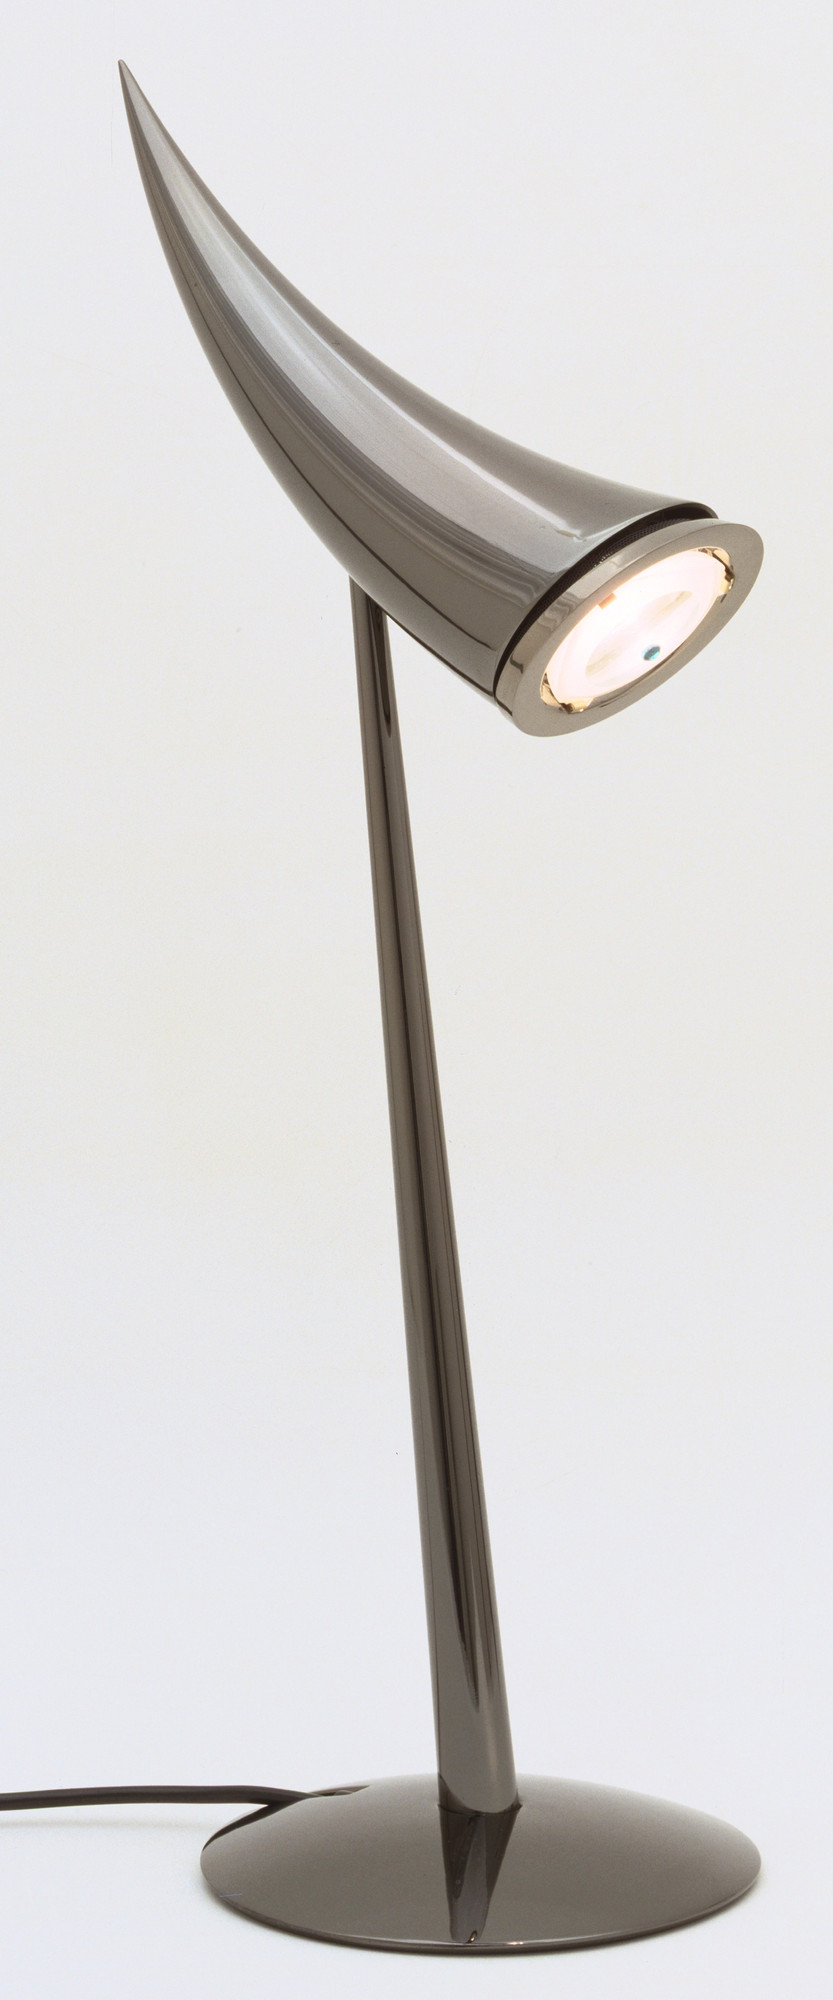 Philippe Starck. Ara Table Lamp. 1988